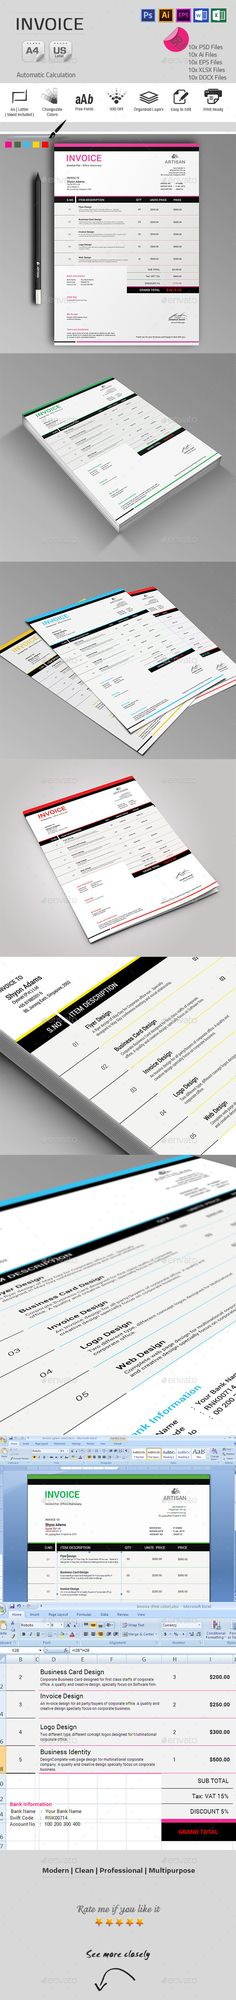 Invoice Template | Download: http://graphicriver.net/item/invoice/9900319?ref=ksioks